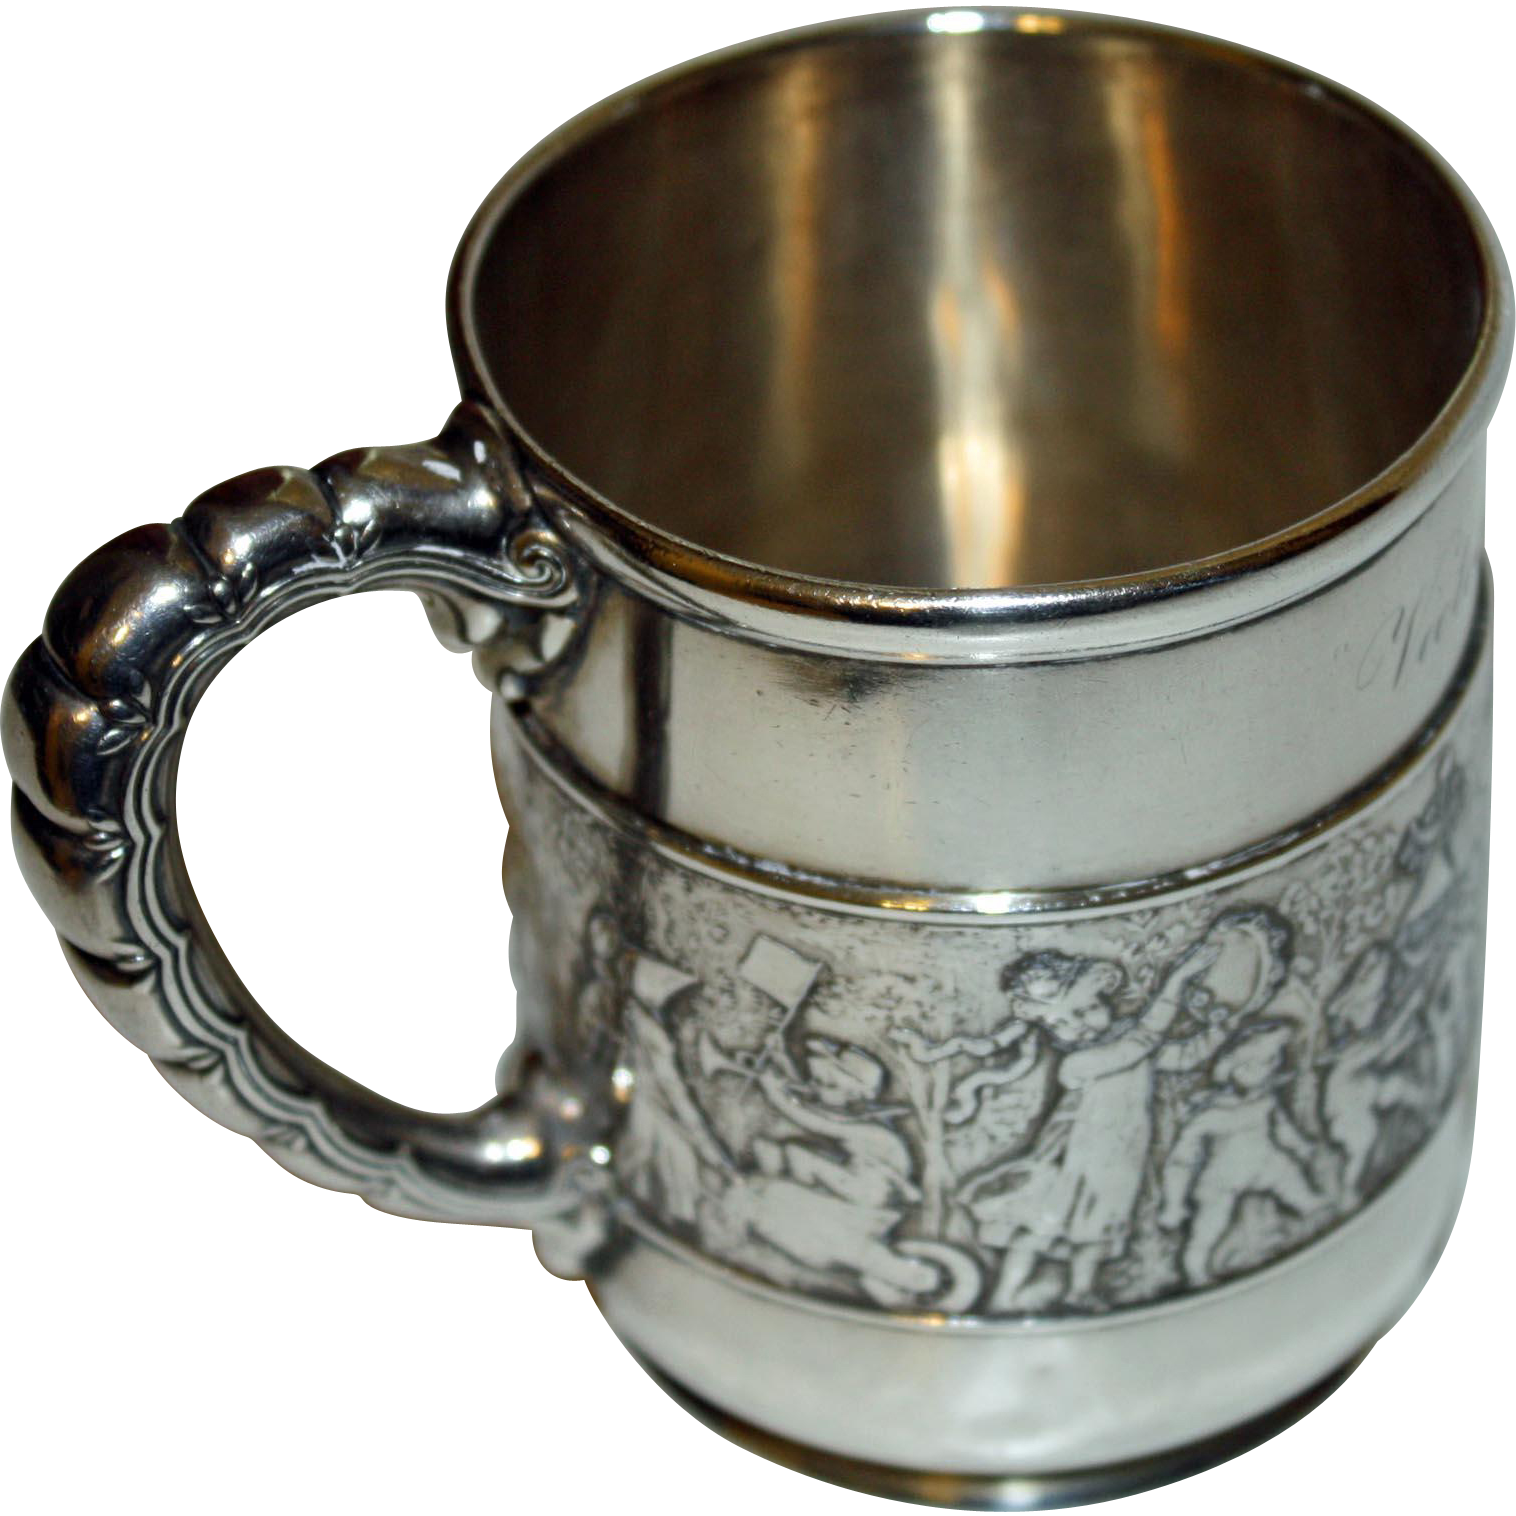 This stunning child's mug or cup was made by Tiffany and it has the quality Tiffany represents. The design is called Children's Parade and depicts